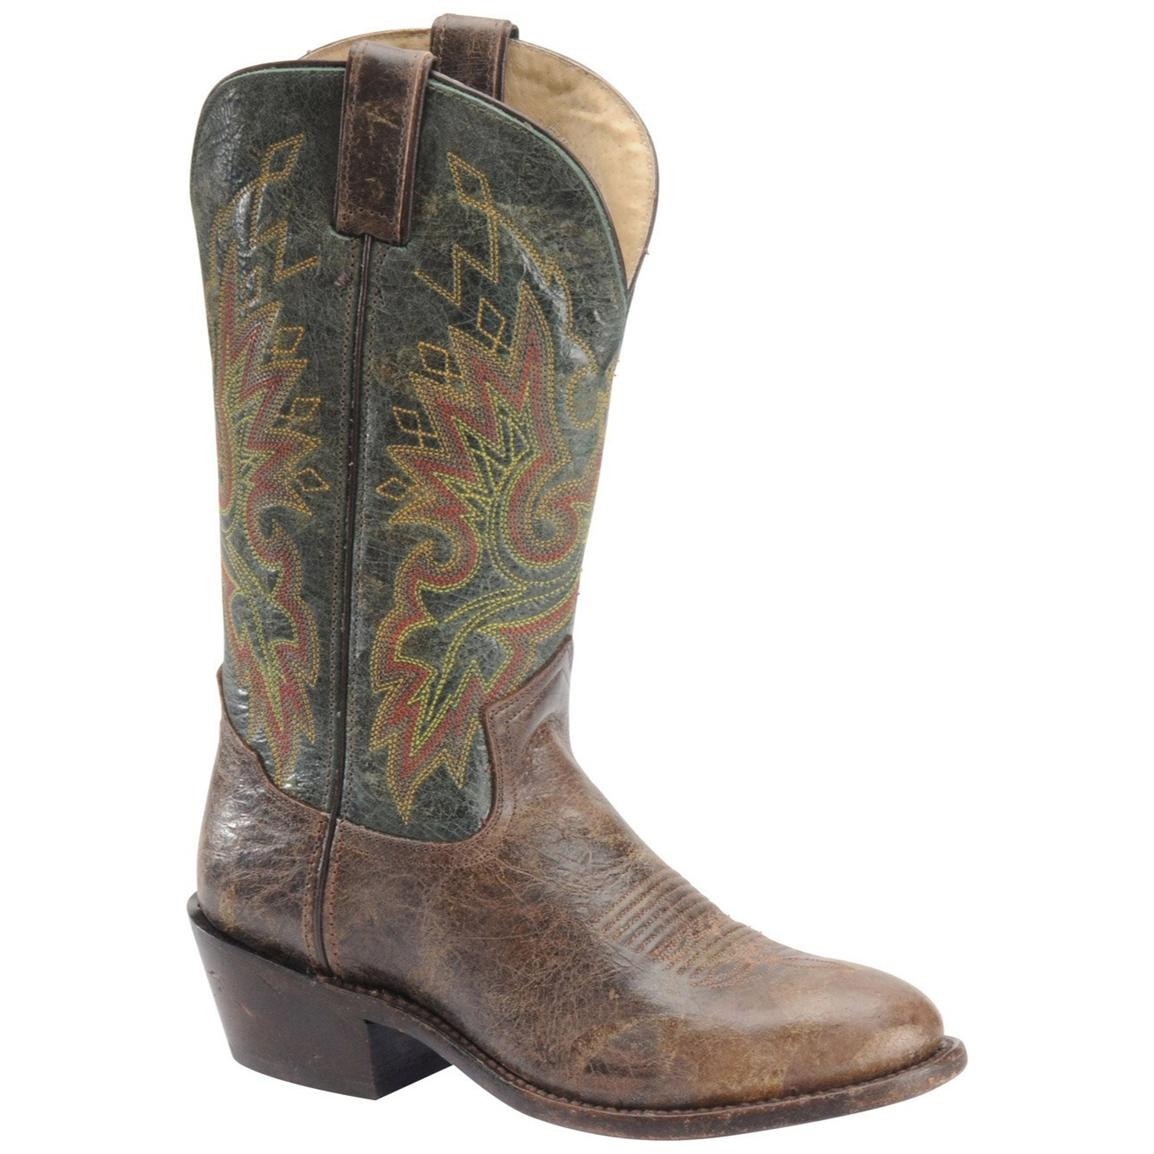 Men's 12 inch Double H® Wide Square Toe Roper Cowboy Boots